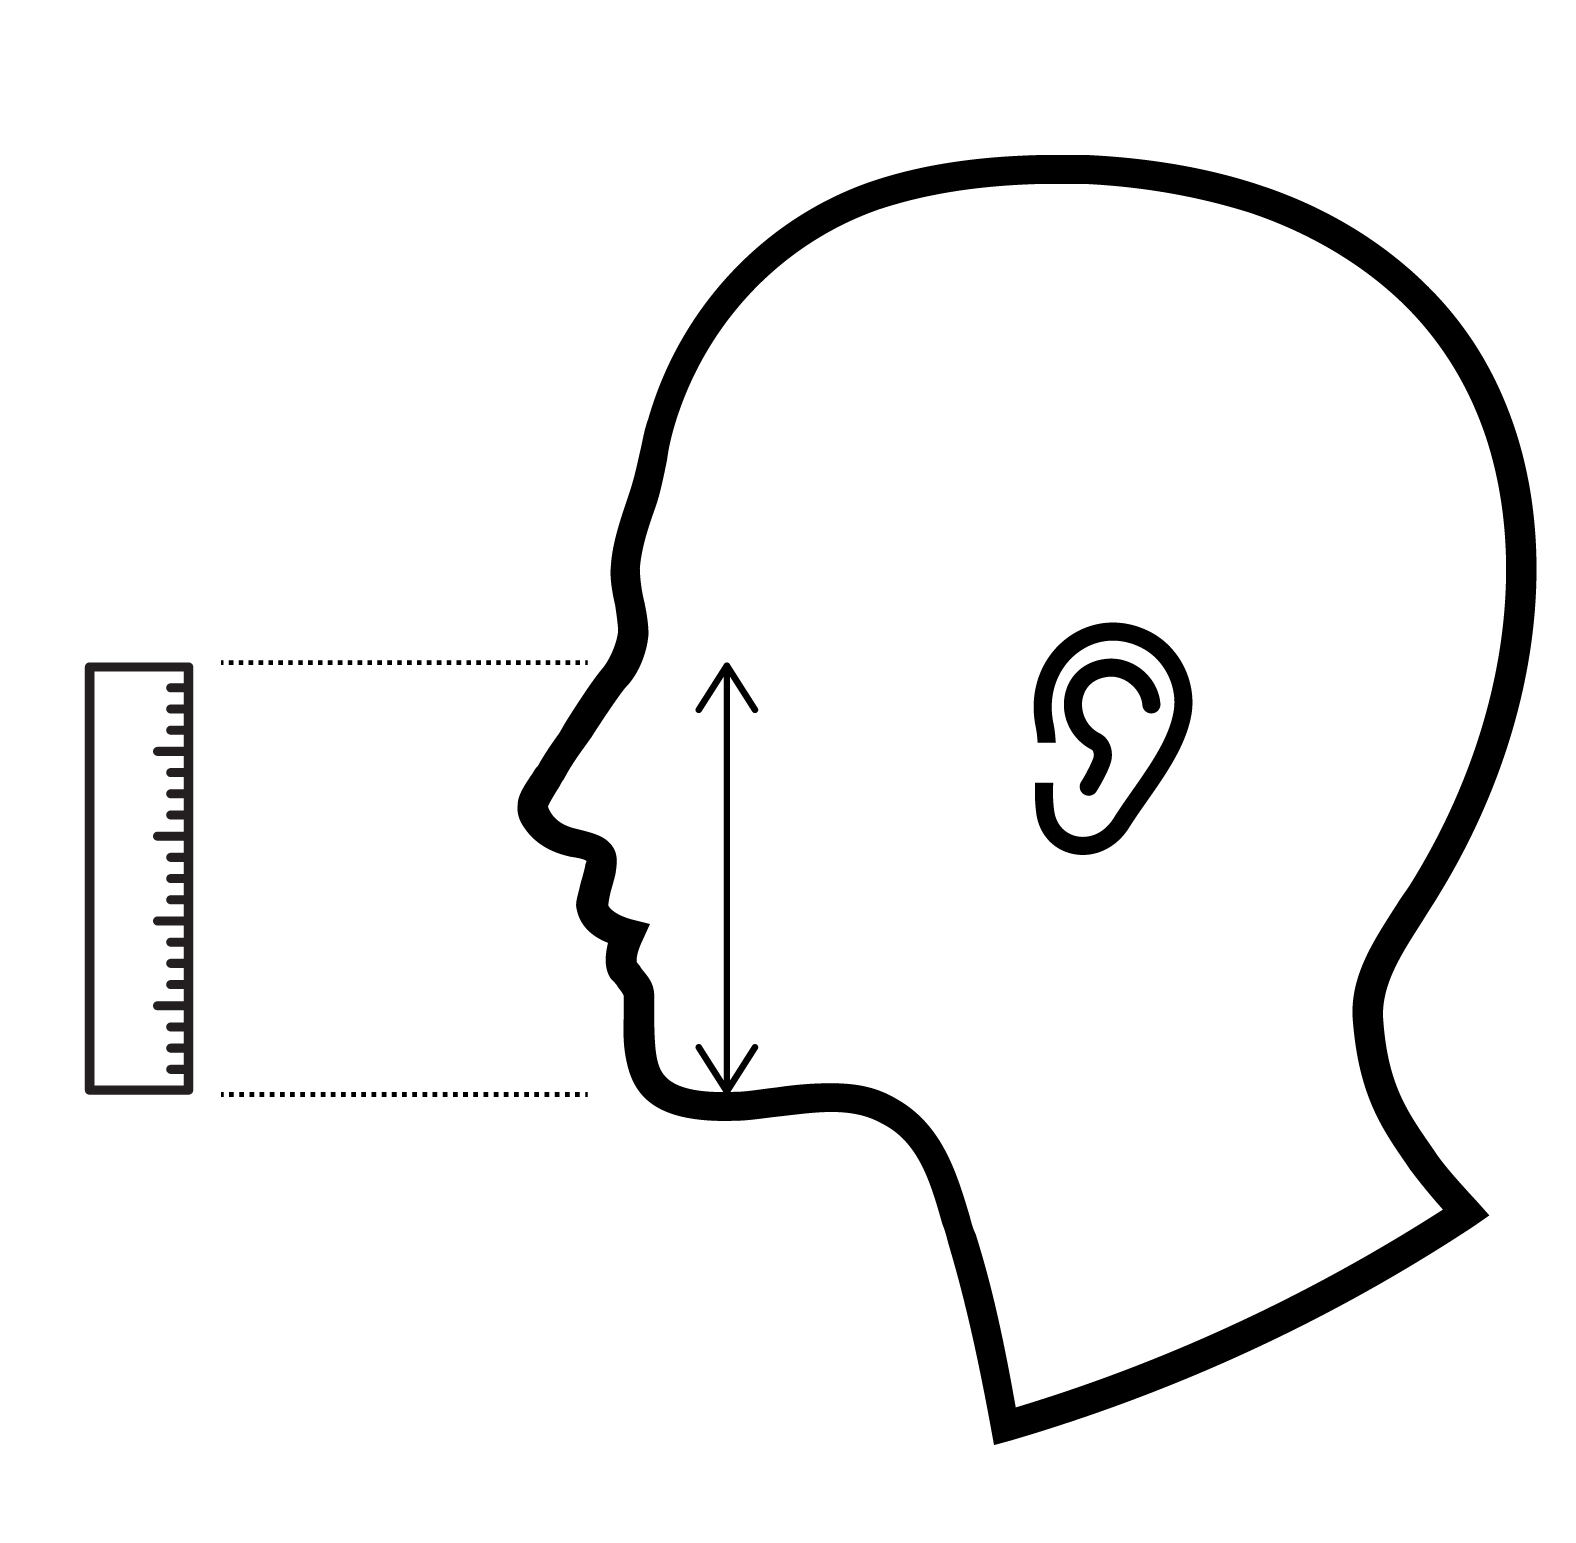 Measurement 2: Bridge of nose to just under chin (max.)